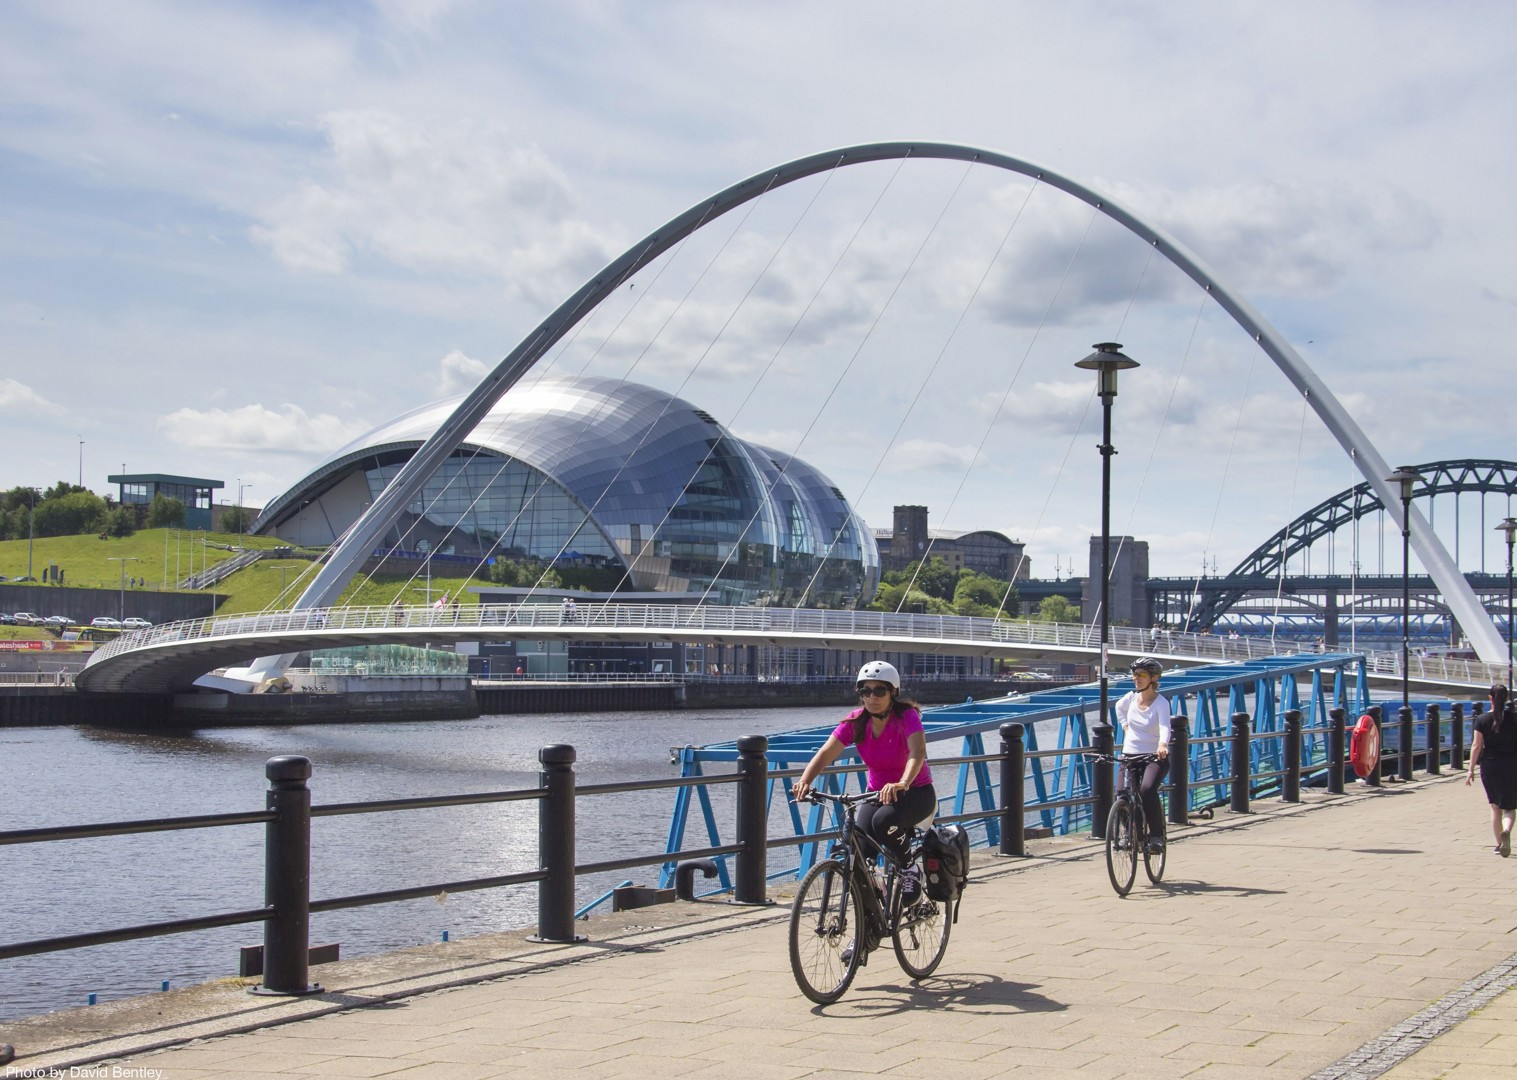 Supported-Leisure-Cycling-Holiday-Hadrians-Cycleway-UK-Newcastle.jpg - UK - Hadrian's Cycleway - Supported Leisure Cycling Holiday - Leisure Cycling